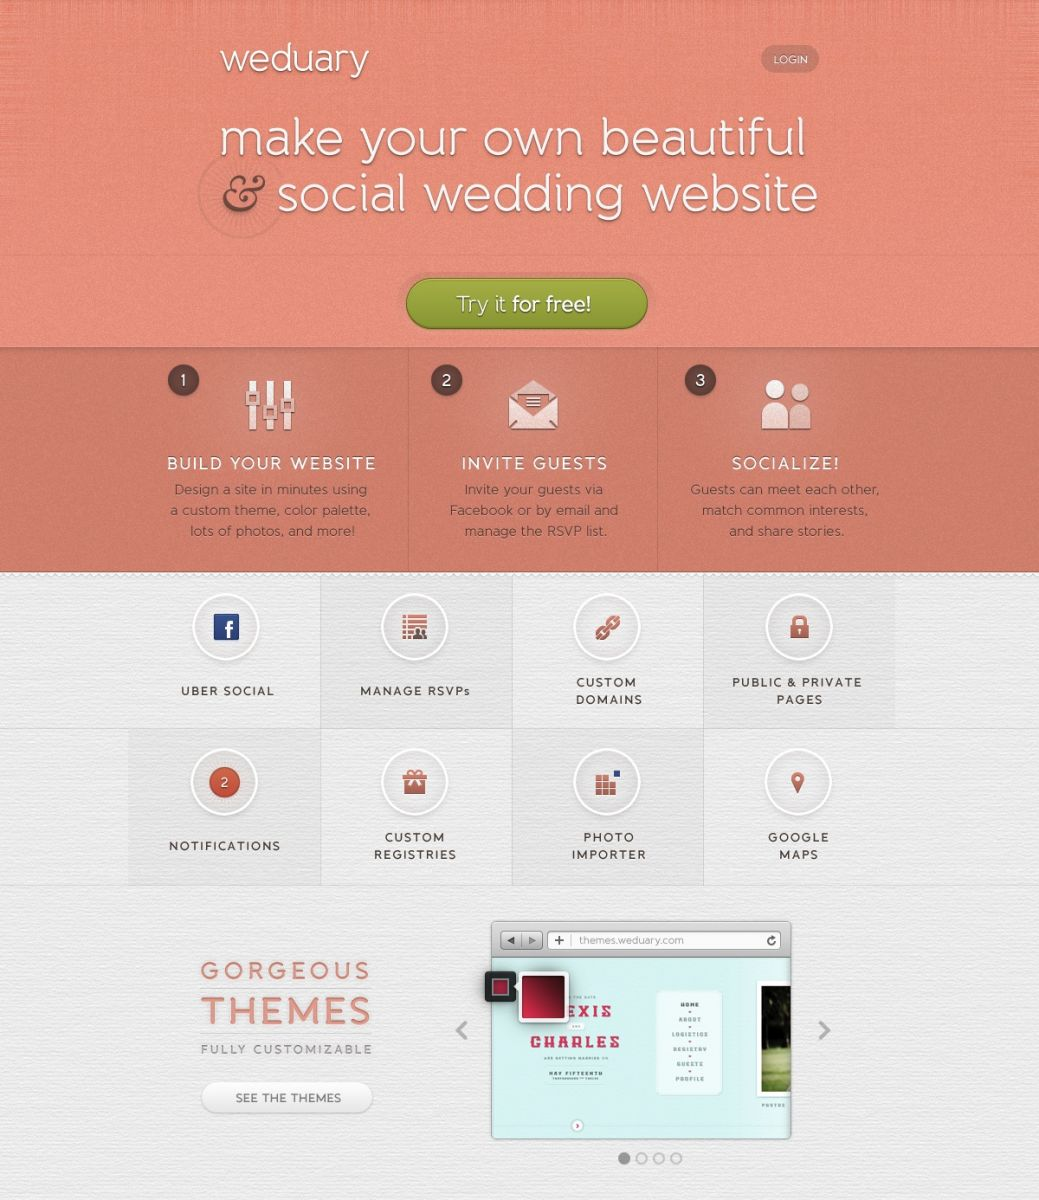 Announcing Weduary: Make Your Own Social & Beautiful